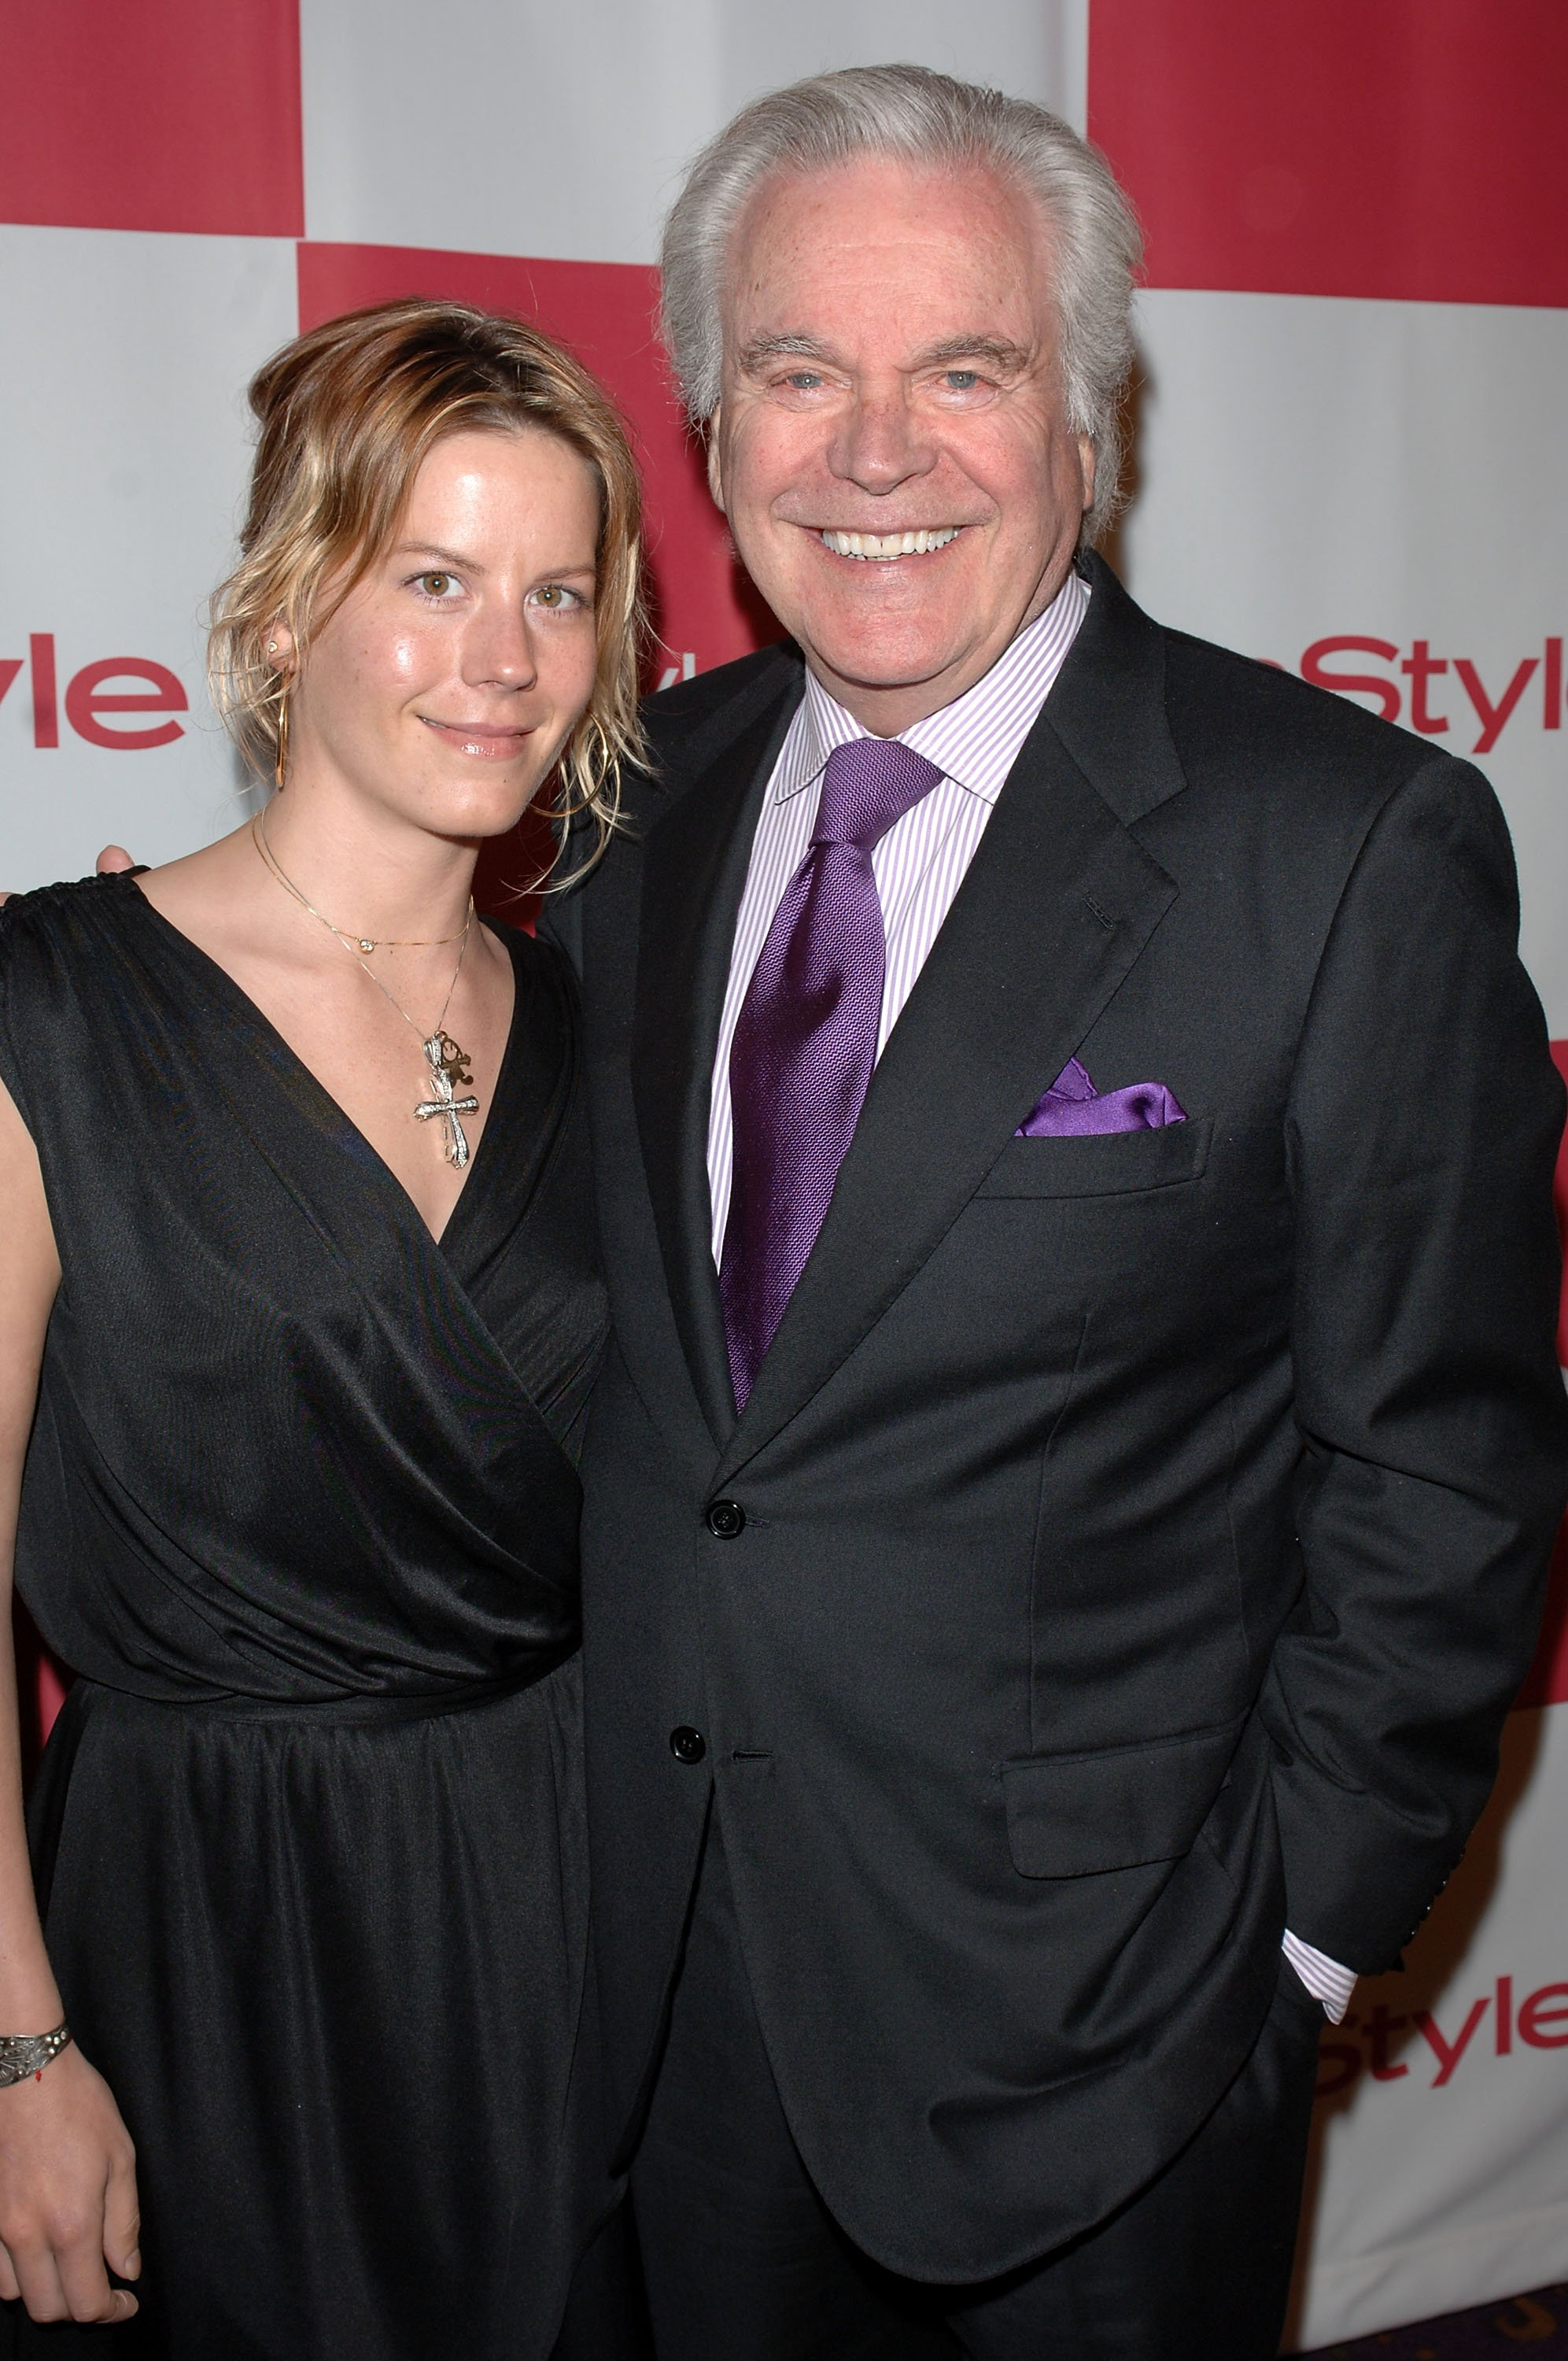 """Robert Wagner (R) and daughter Courtney Wagner attend the In Style party celebrating the publication of Joyce Ostin's book """"A Tribute to Hollywood Dads"""" at Spago on May 17, 2007, in Beverly Hills, California. 